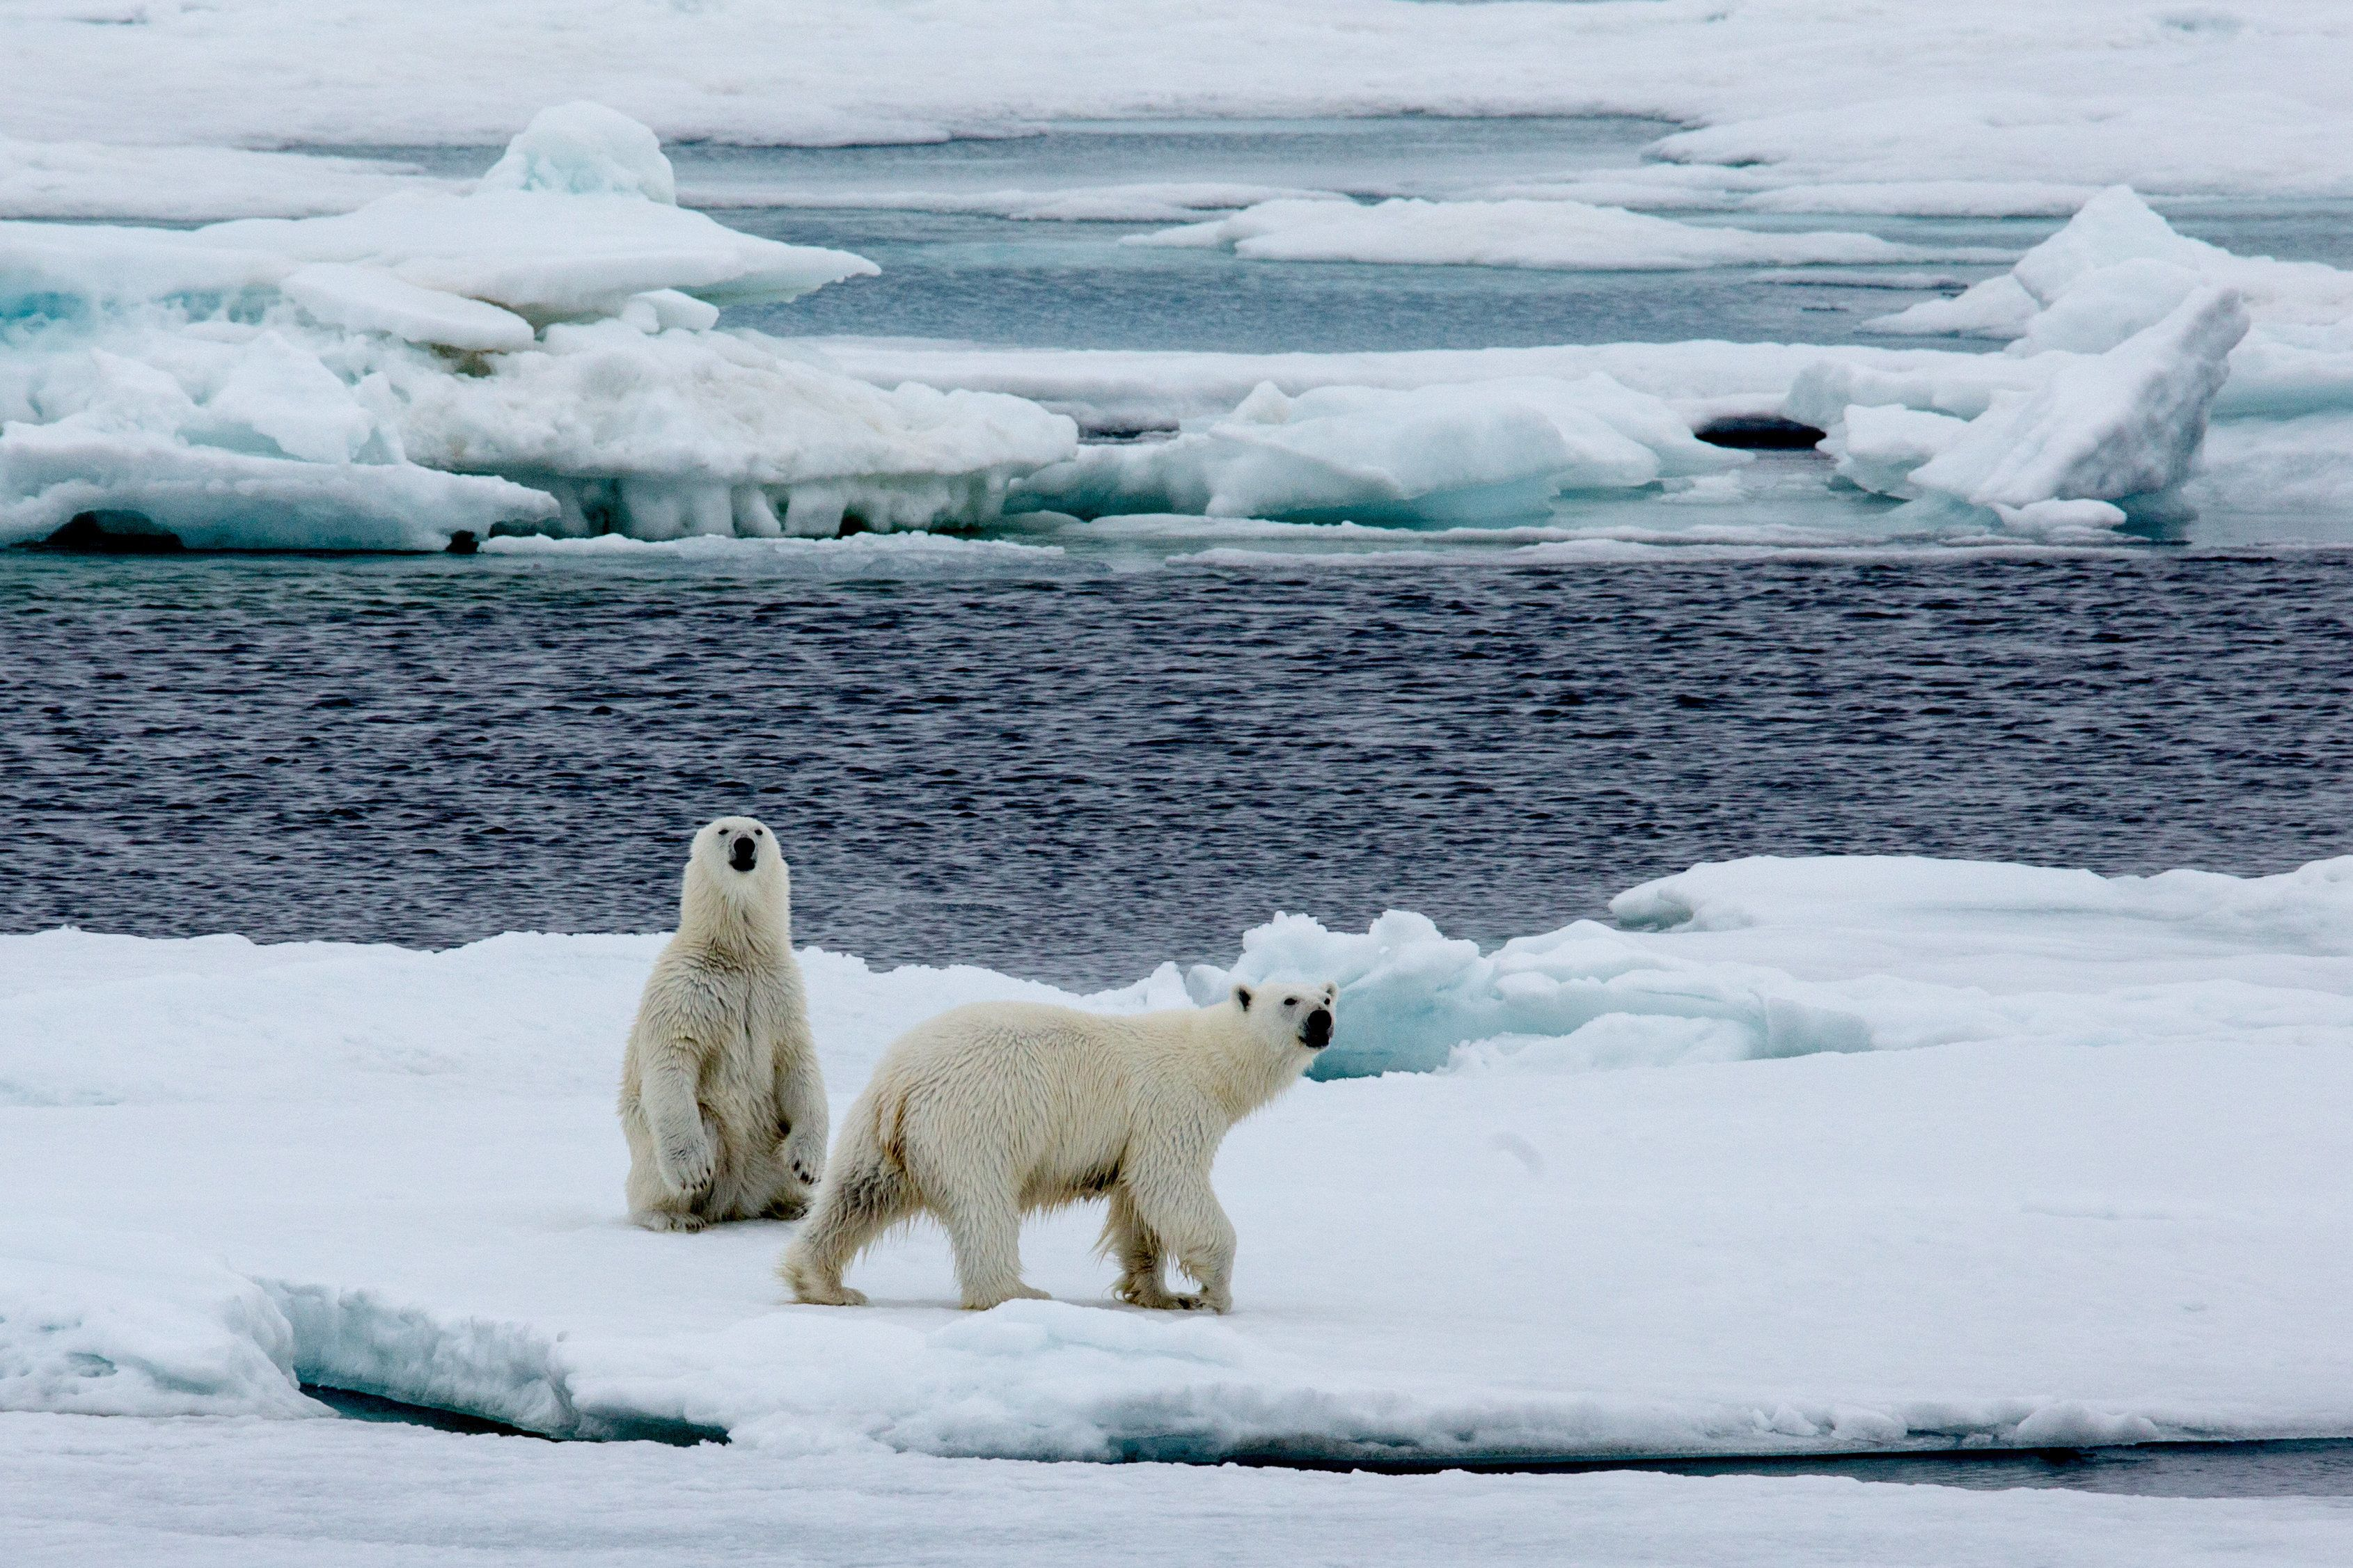 Climate drives 'new era' in Arctic Ocean - BBC News